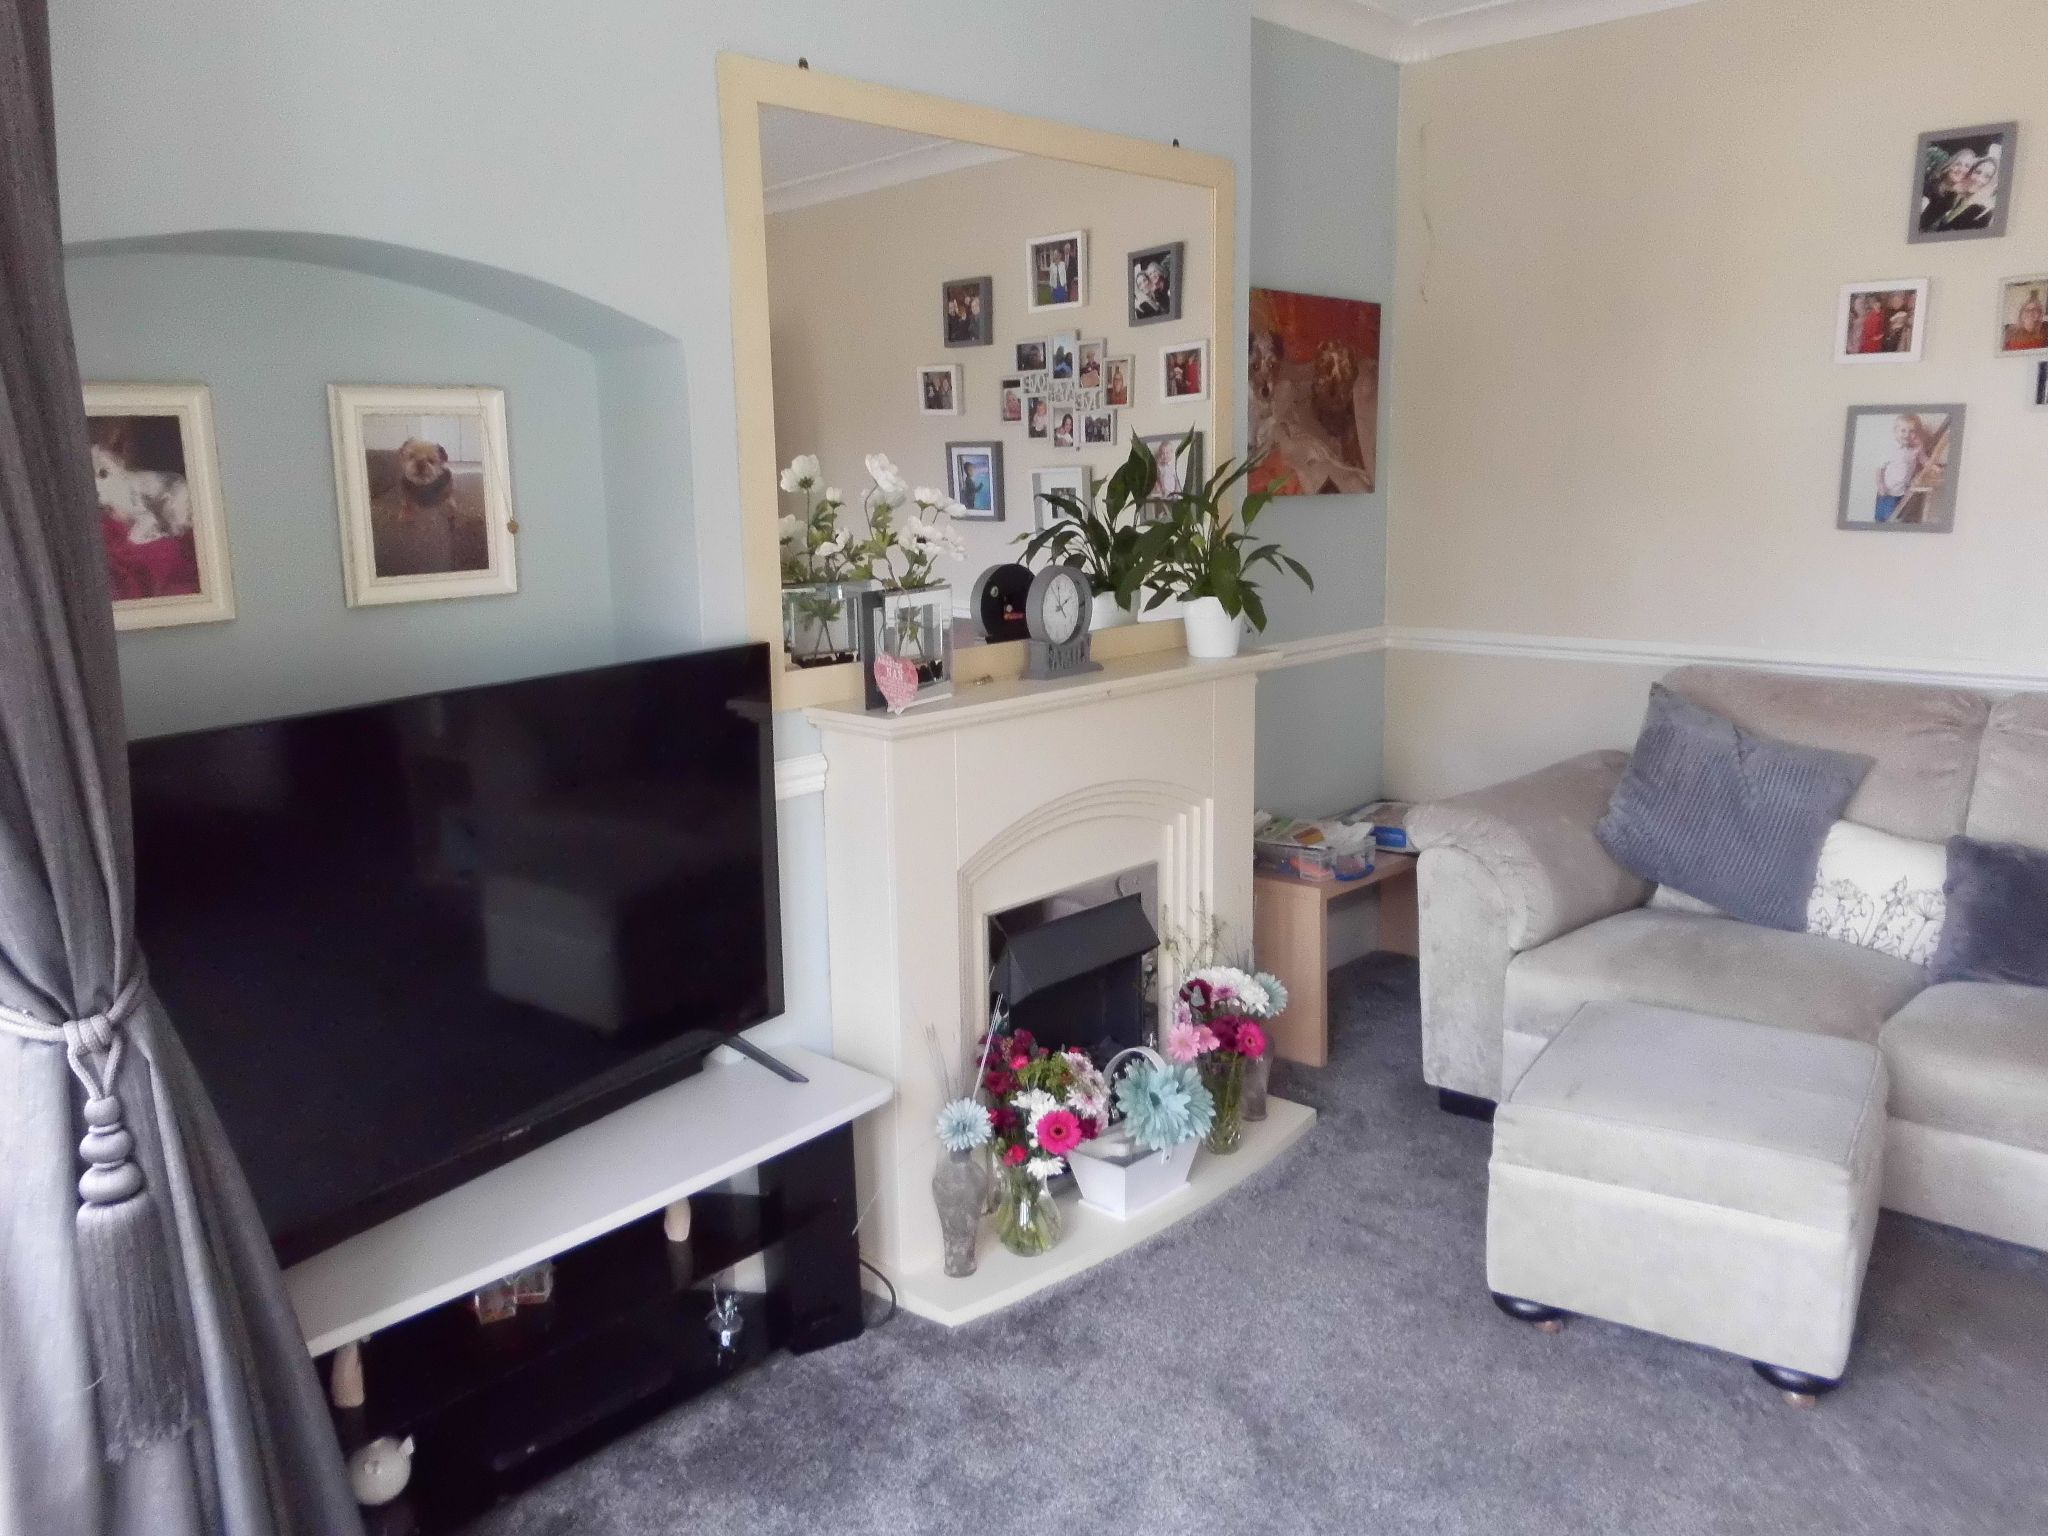 4 bedroom detached house For Sale in Leicester - Photograph 3.